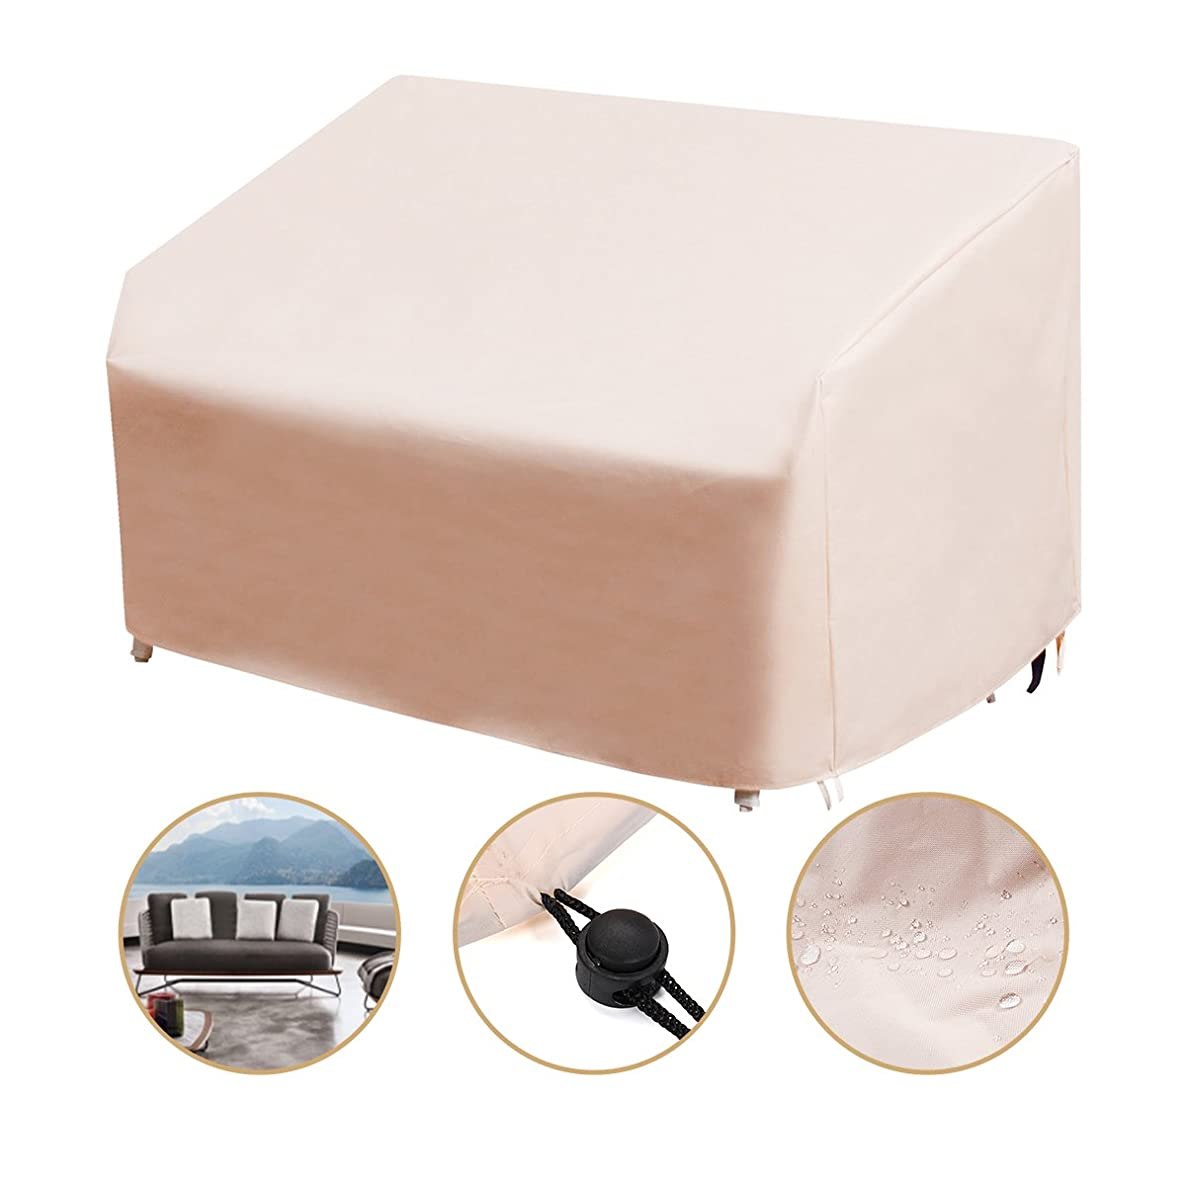 Essort Patio Three-Seats Sofa Cover, Waterproof Outdoor Furniture Protection, 85x43x40 inches, Beige